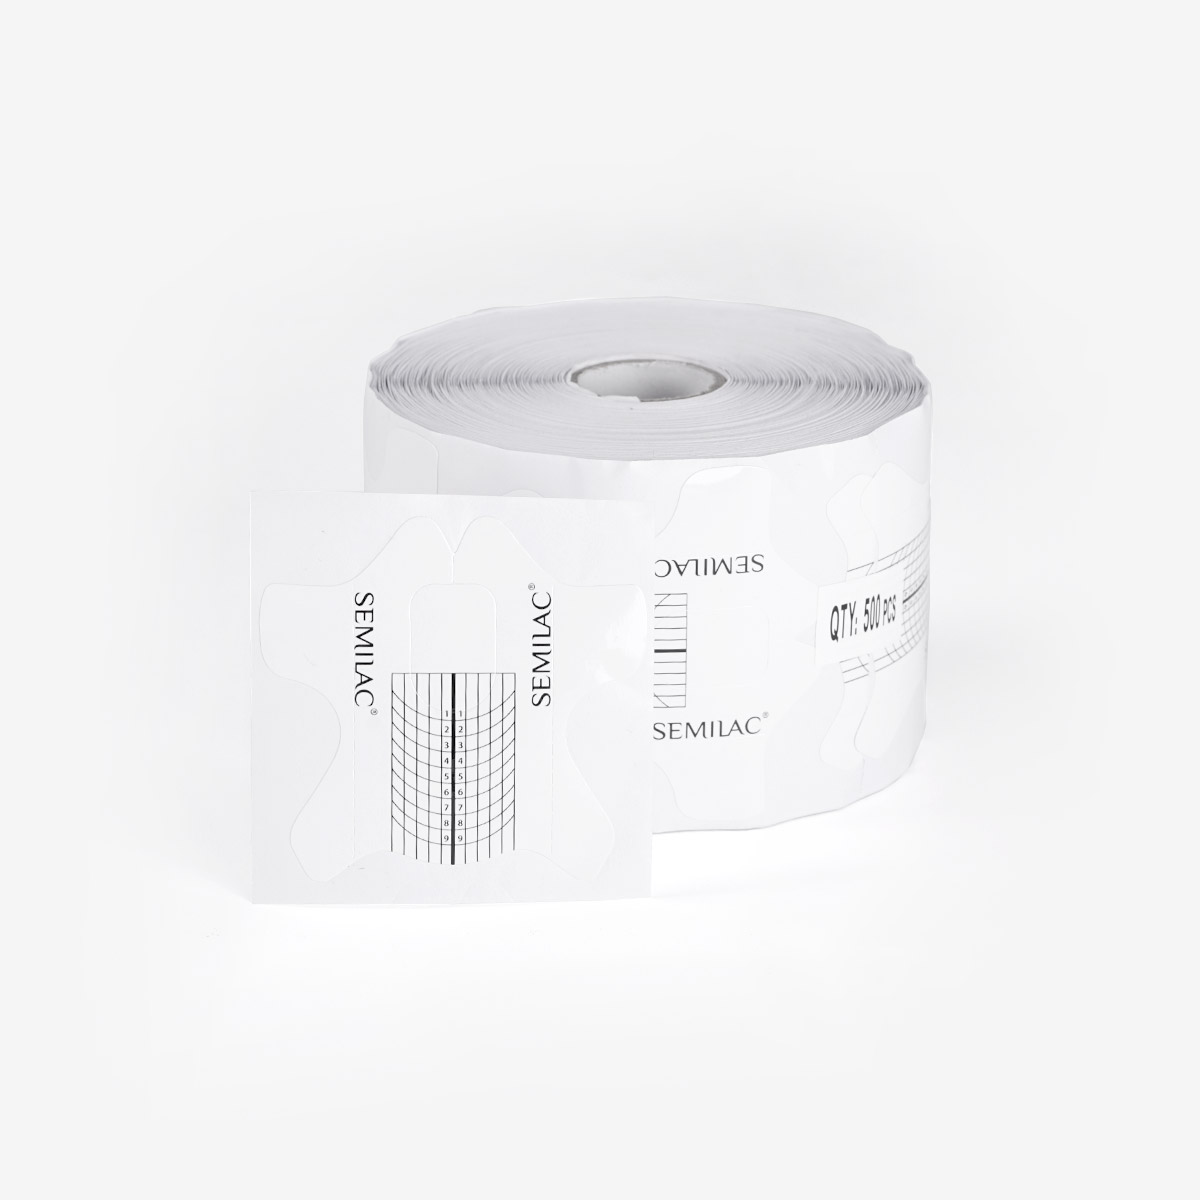 Semilac Shaper Wide Nail Forms - 500 szt.